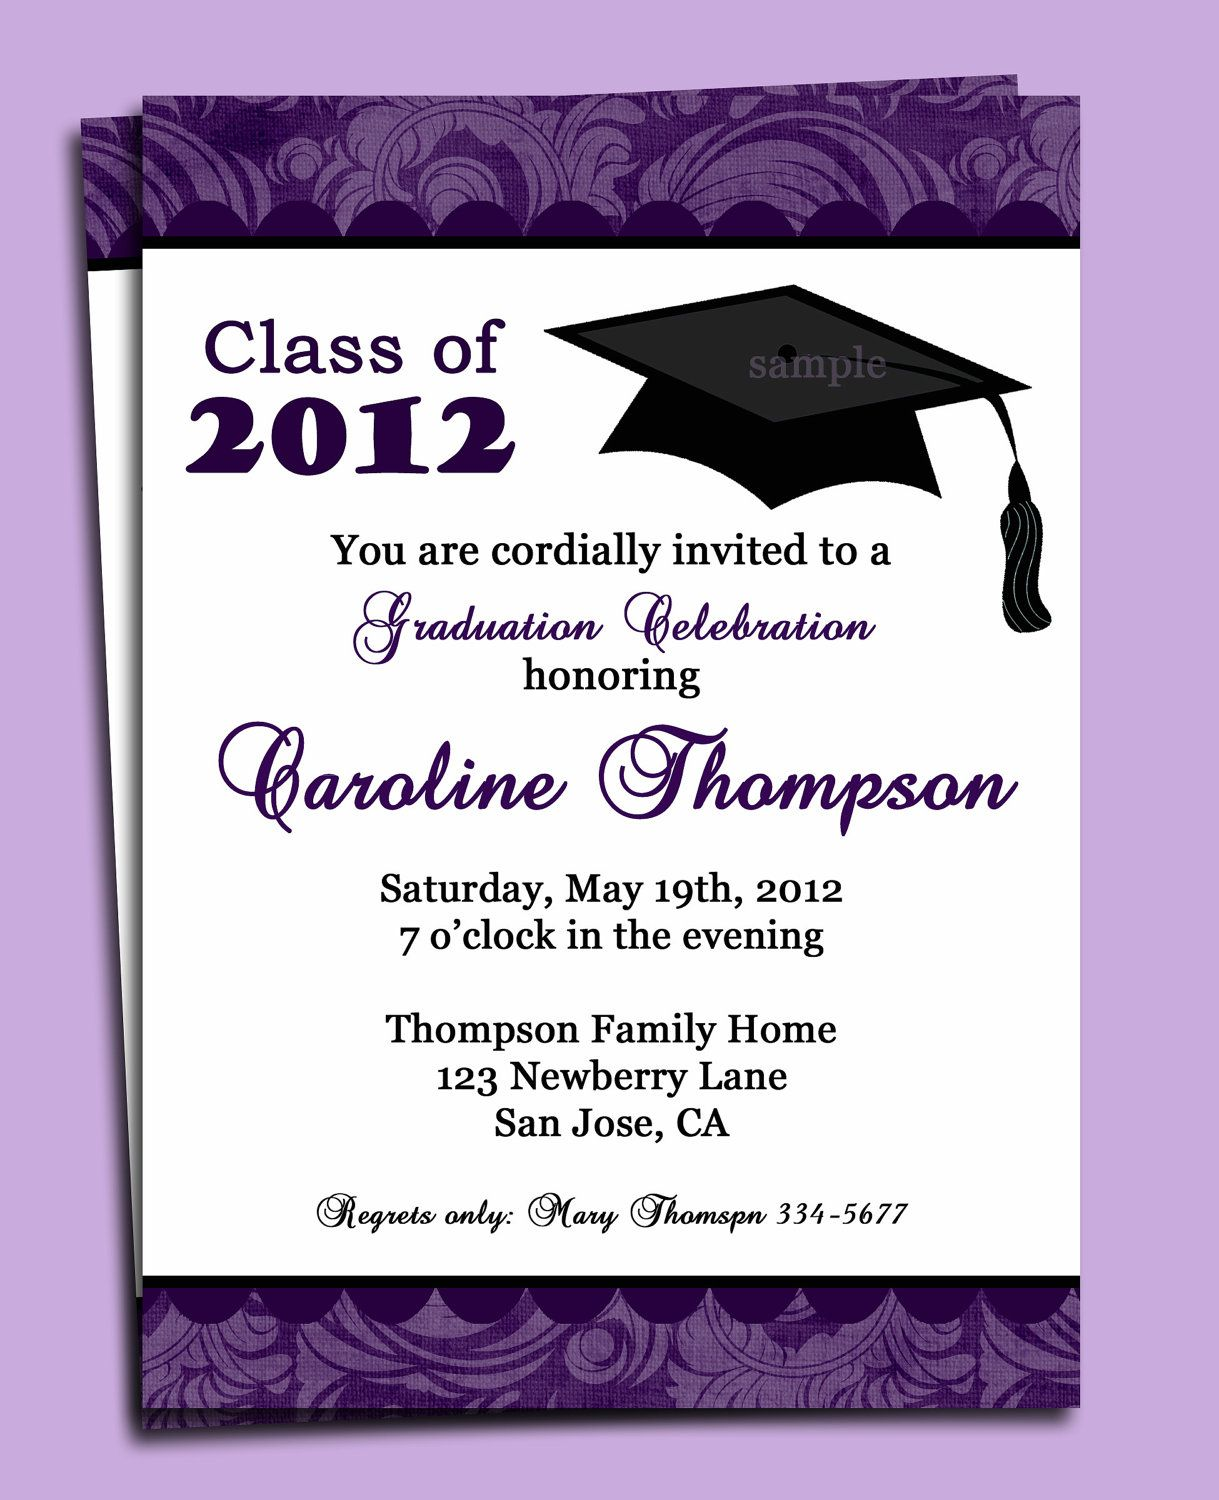 Free Printable Invitation Cards For Graduation Graduation Party Invitation Wording Graduation Invitation Wording Free Printable Graduation Invitations